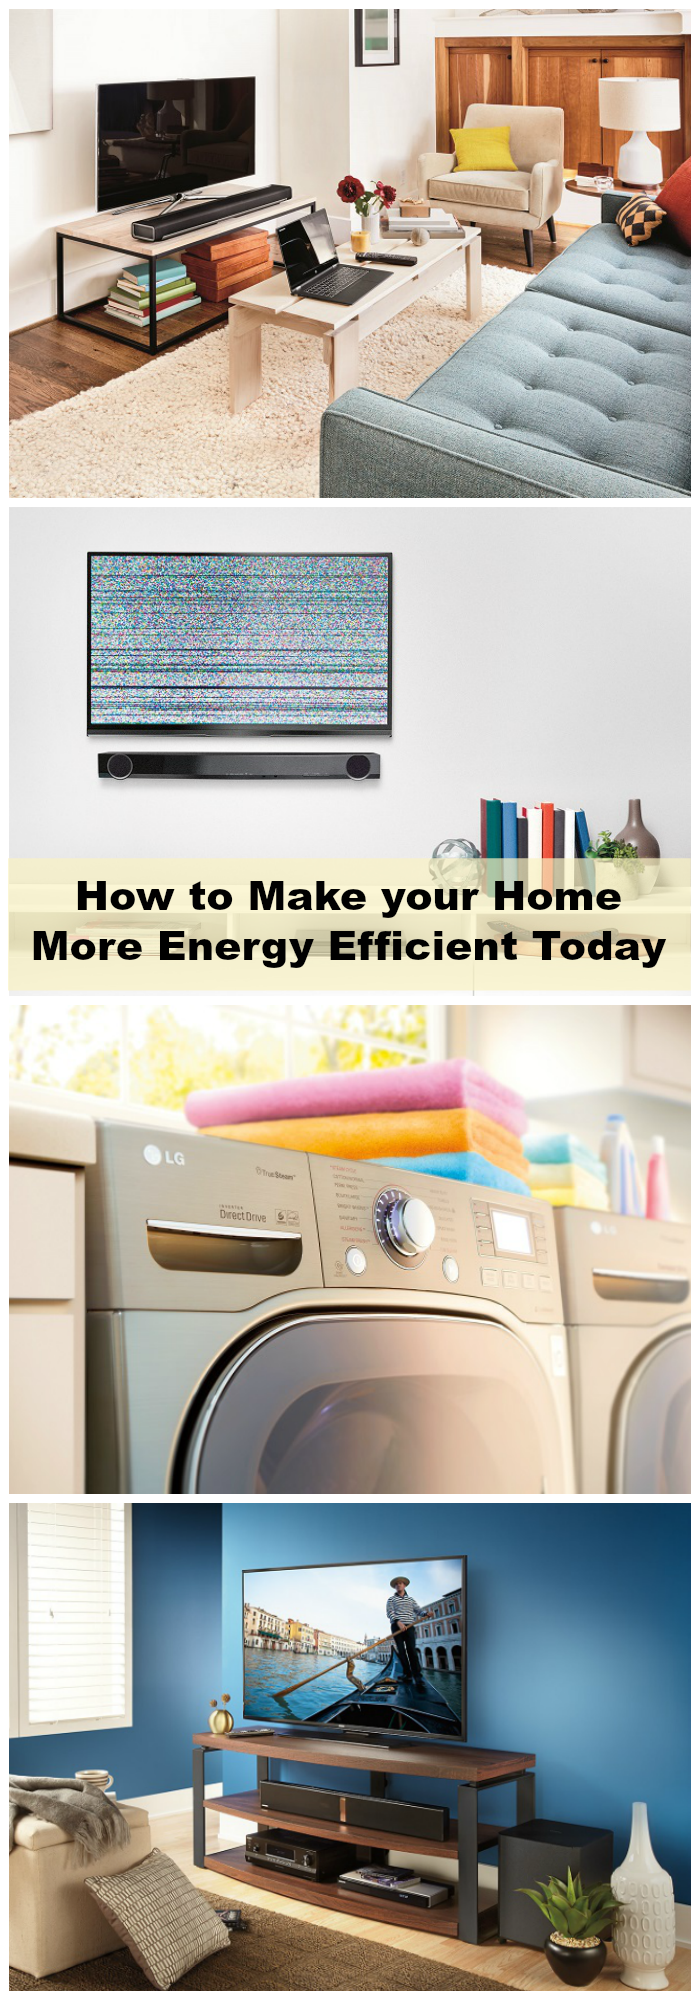 Learn How to Make your Home More Energy Efficient Today with just a few changes. Learn more at CleverlyMe.com